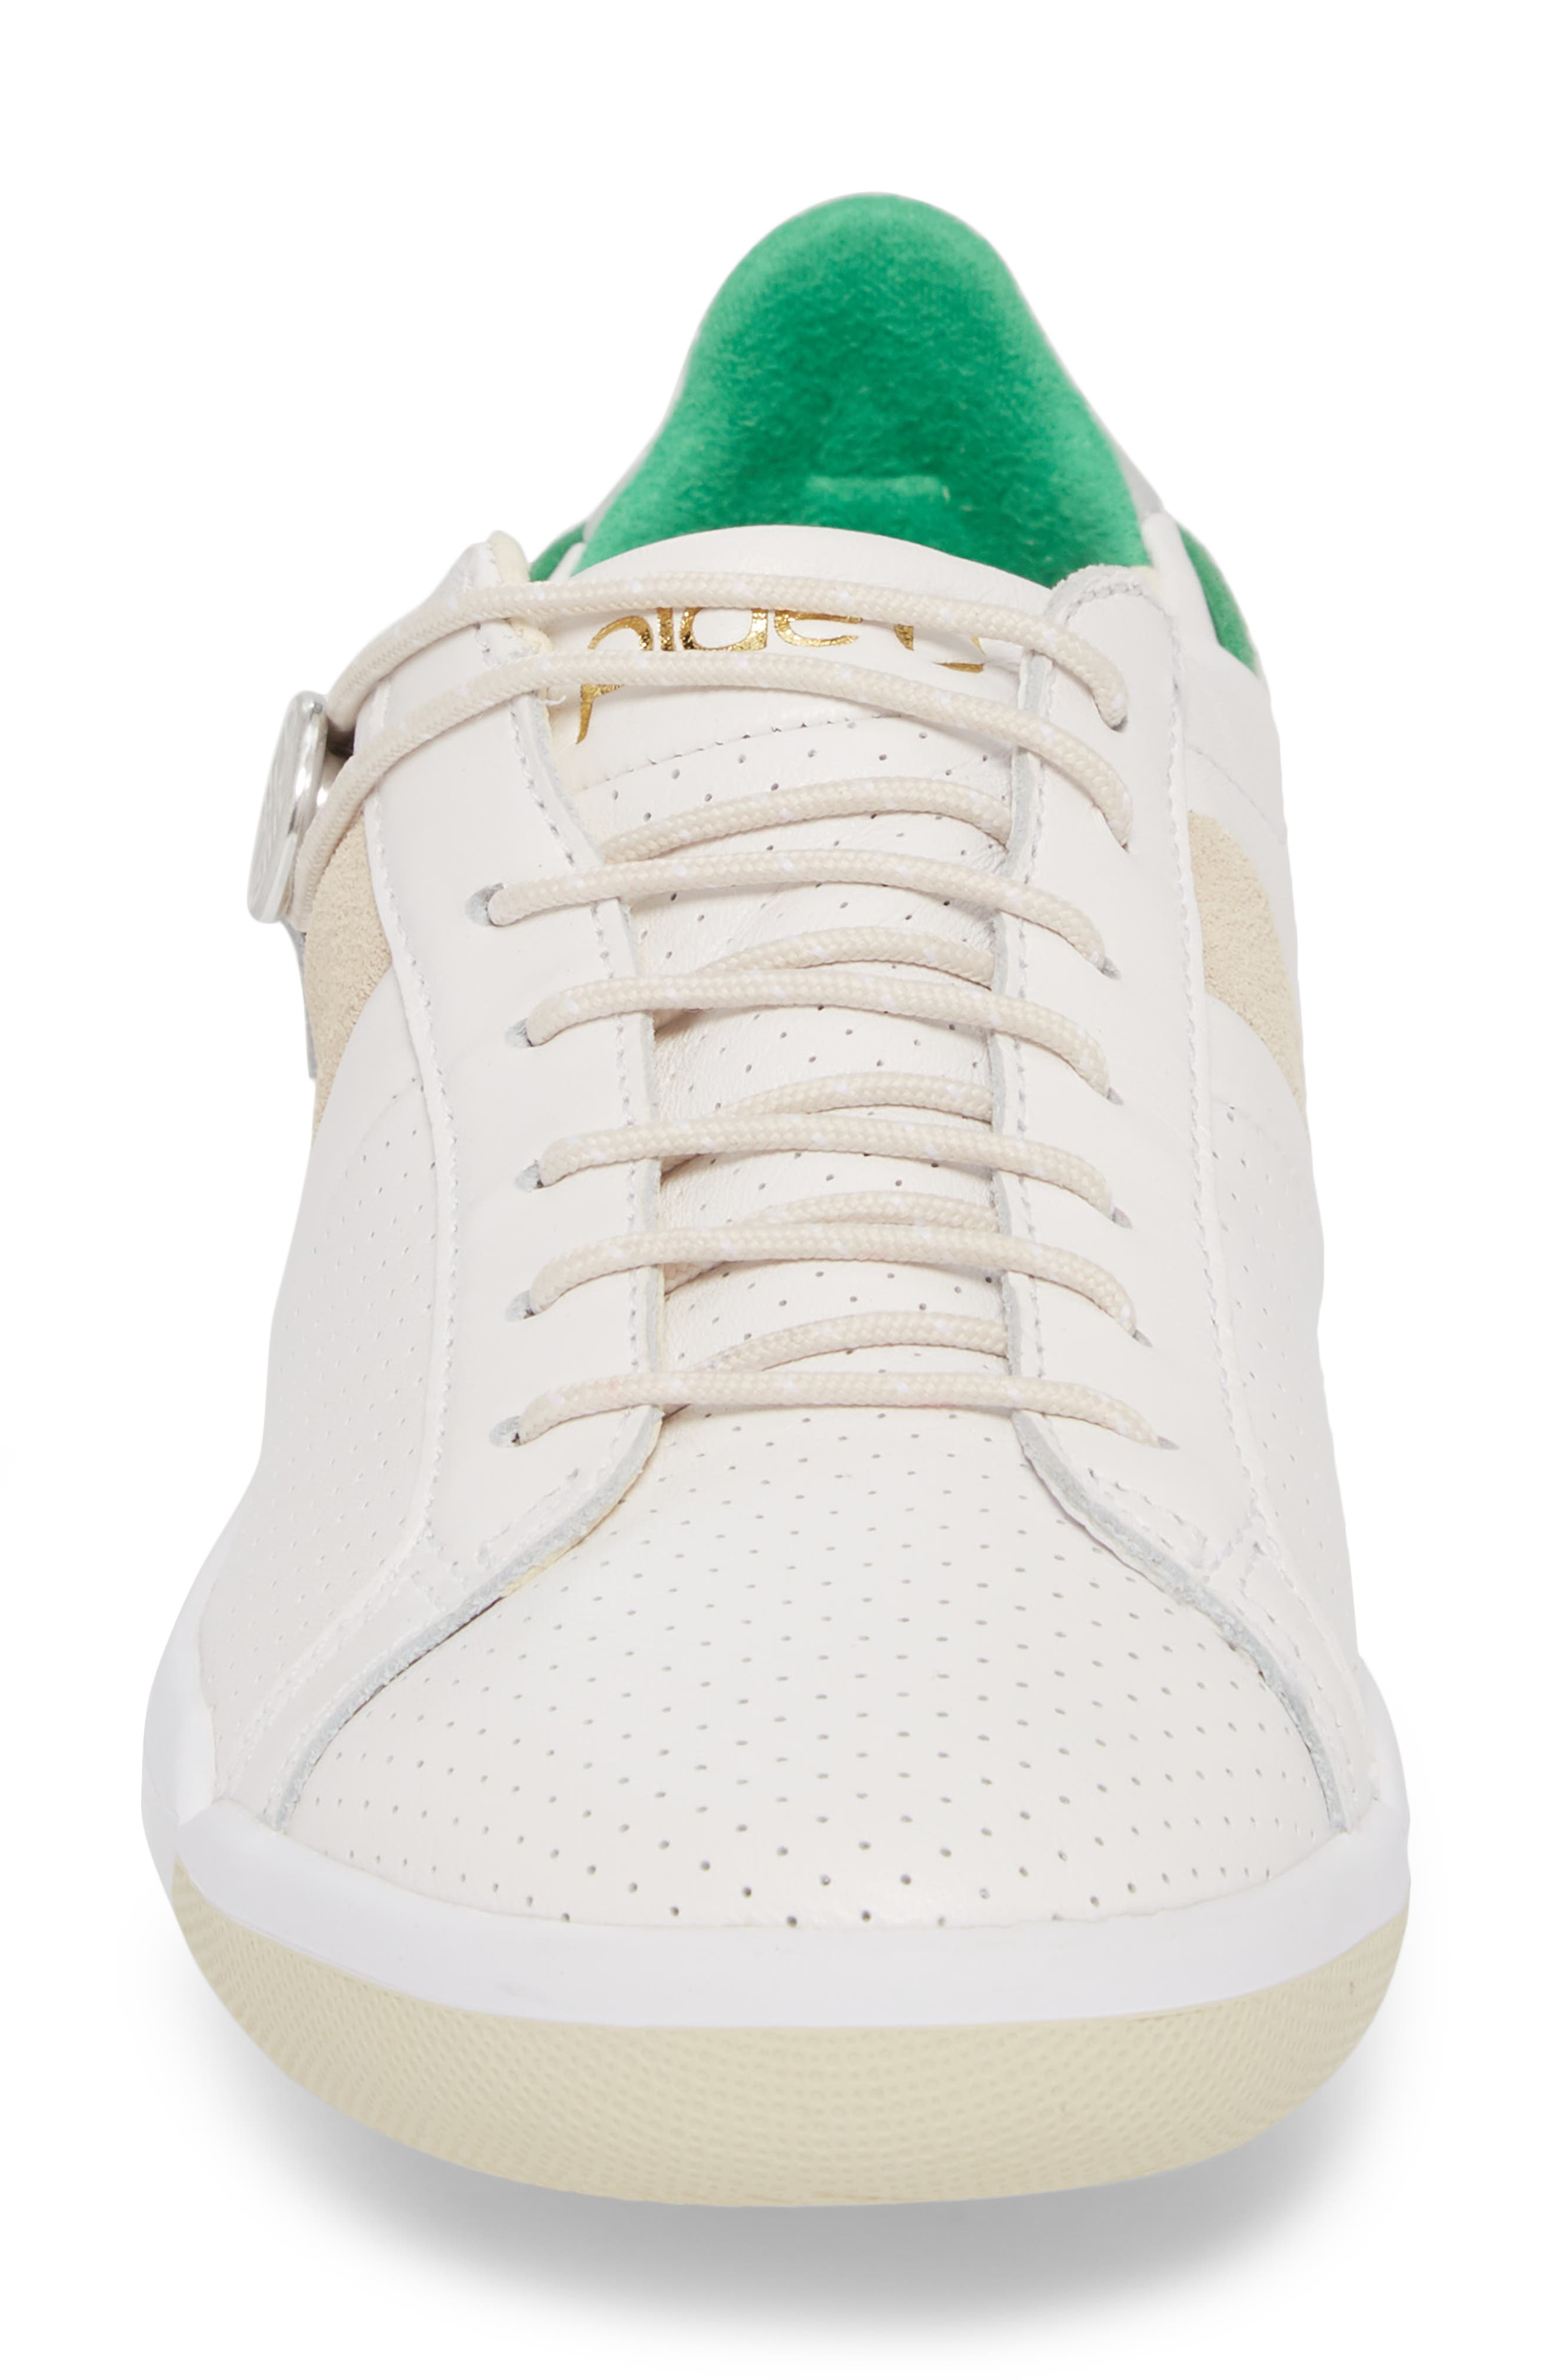 Mulberry Sneaker,                             Alternate thumbnail 4, color,                             White Leather